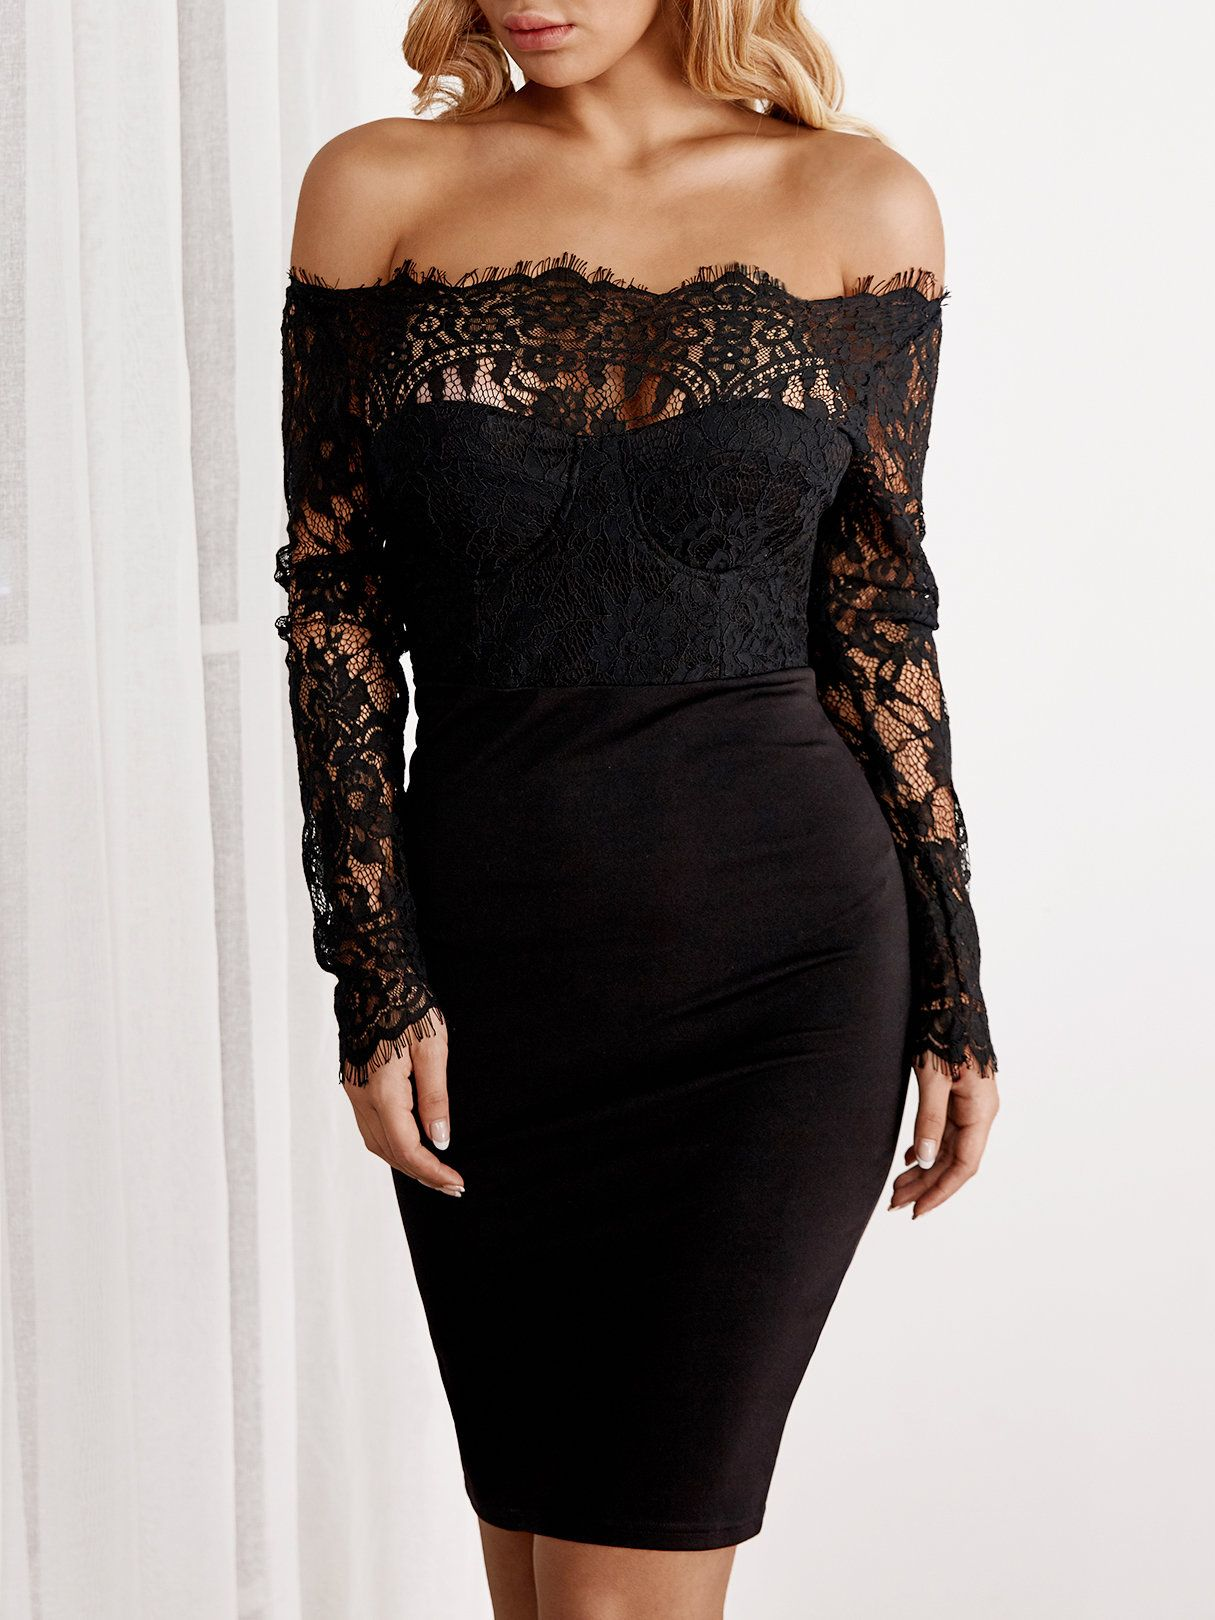 aae24e5a54 Pay attention to this sexy dress. It is adorned with see through lace  details